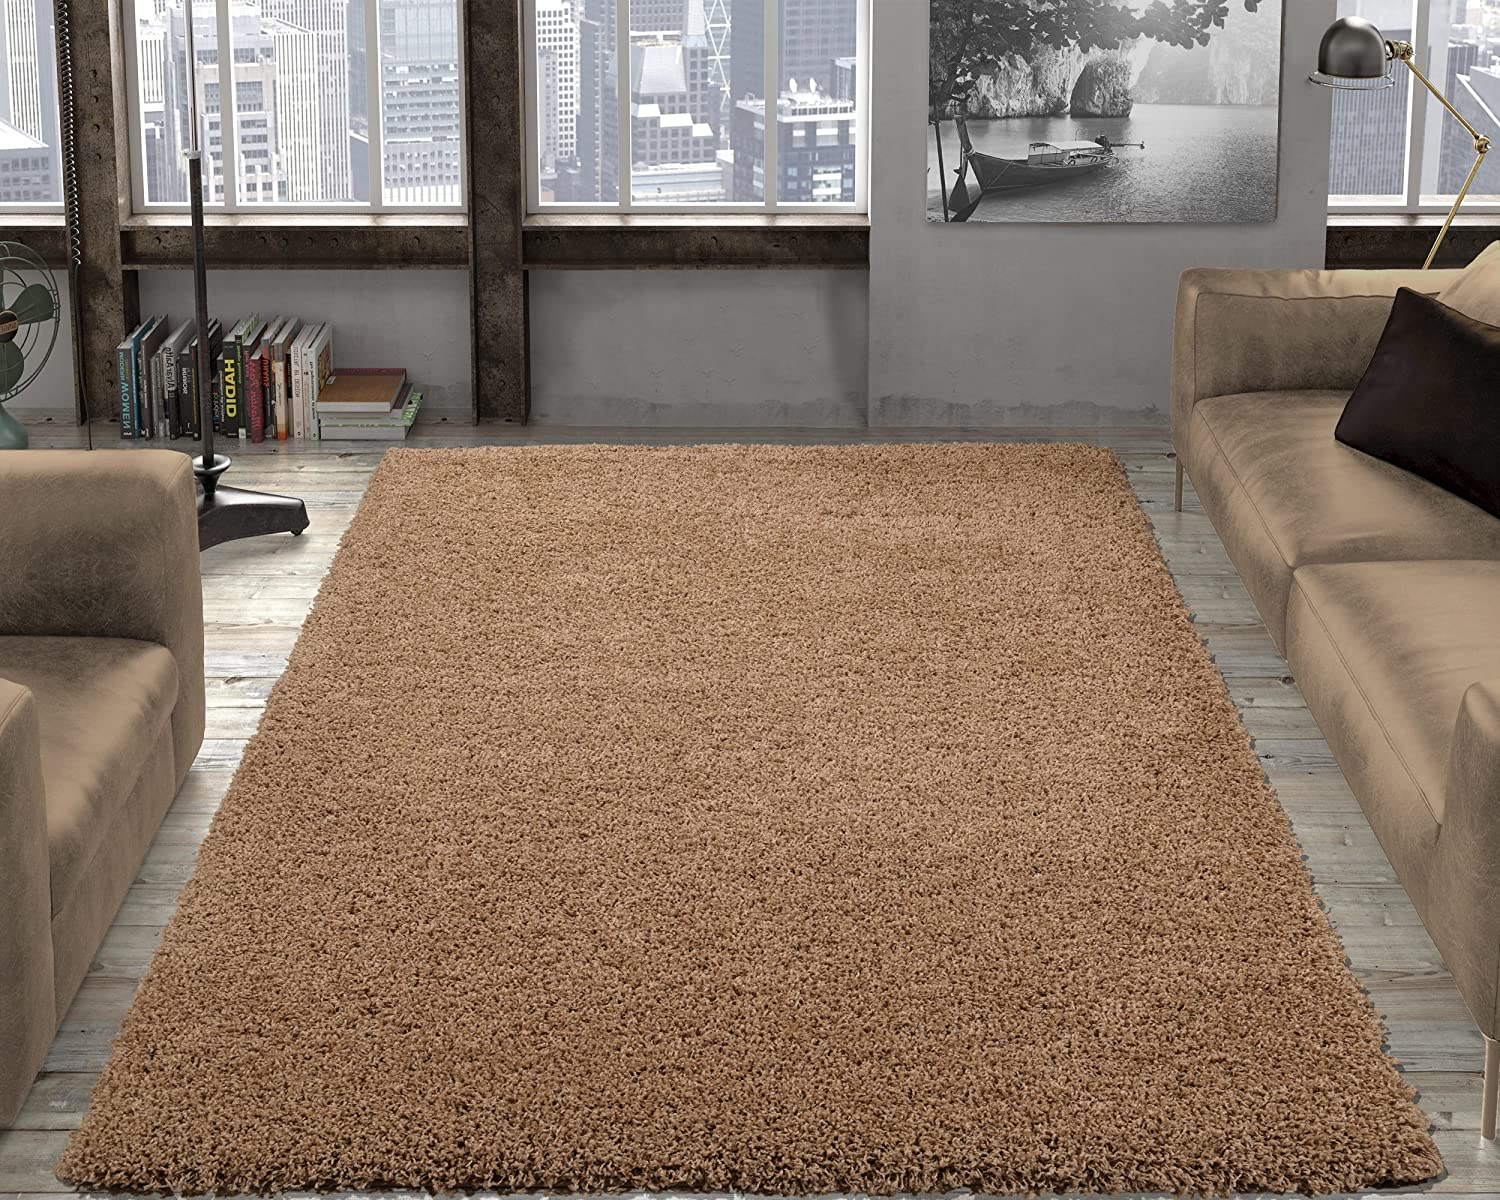 Ottomanson Cozy Color Solid Shag Contemporary Living and Bedroom Soft Shaggy Kids (2'7 X 8'0, Navy) Area Rug SHG2866-3X8